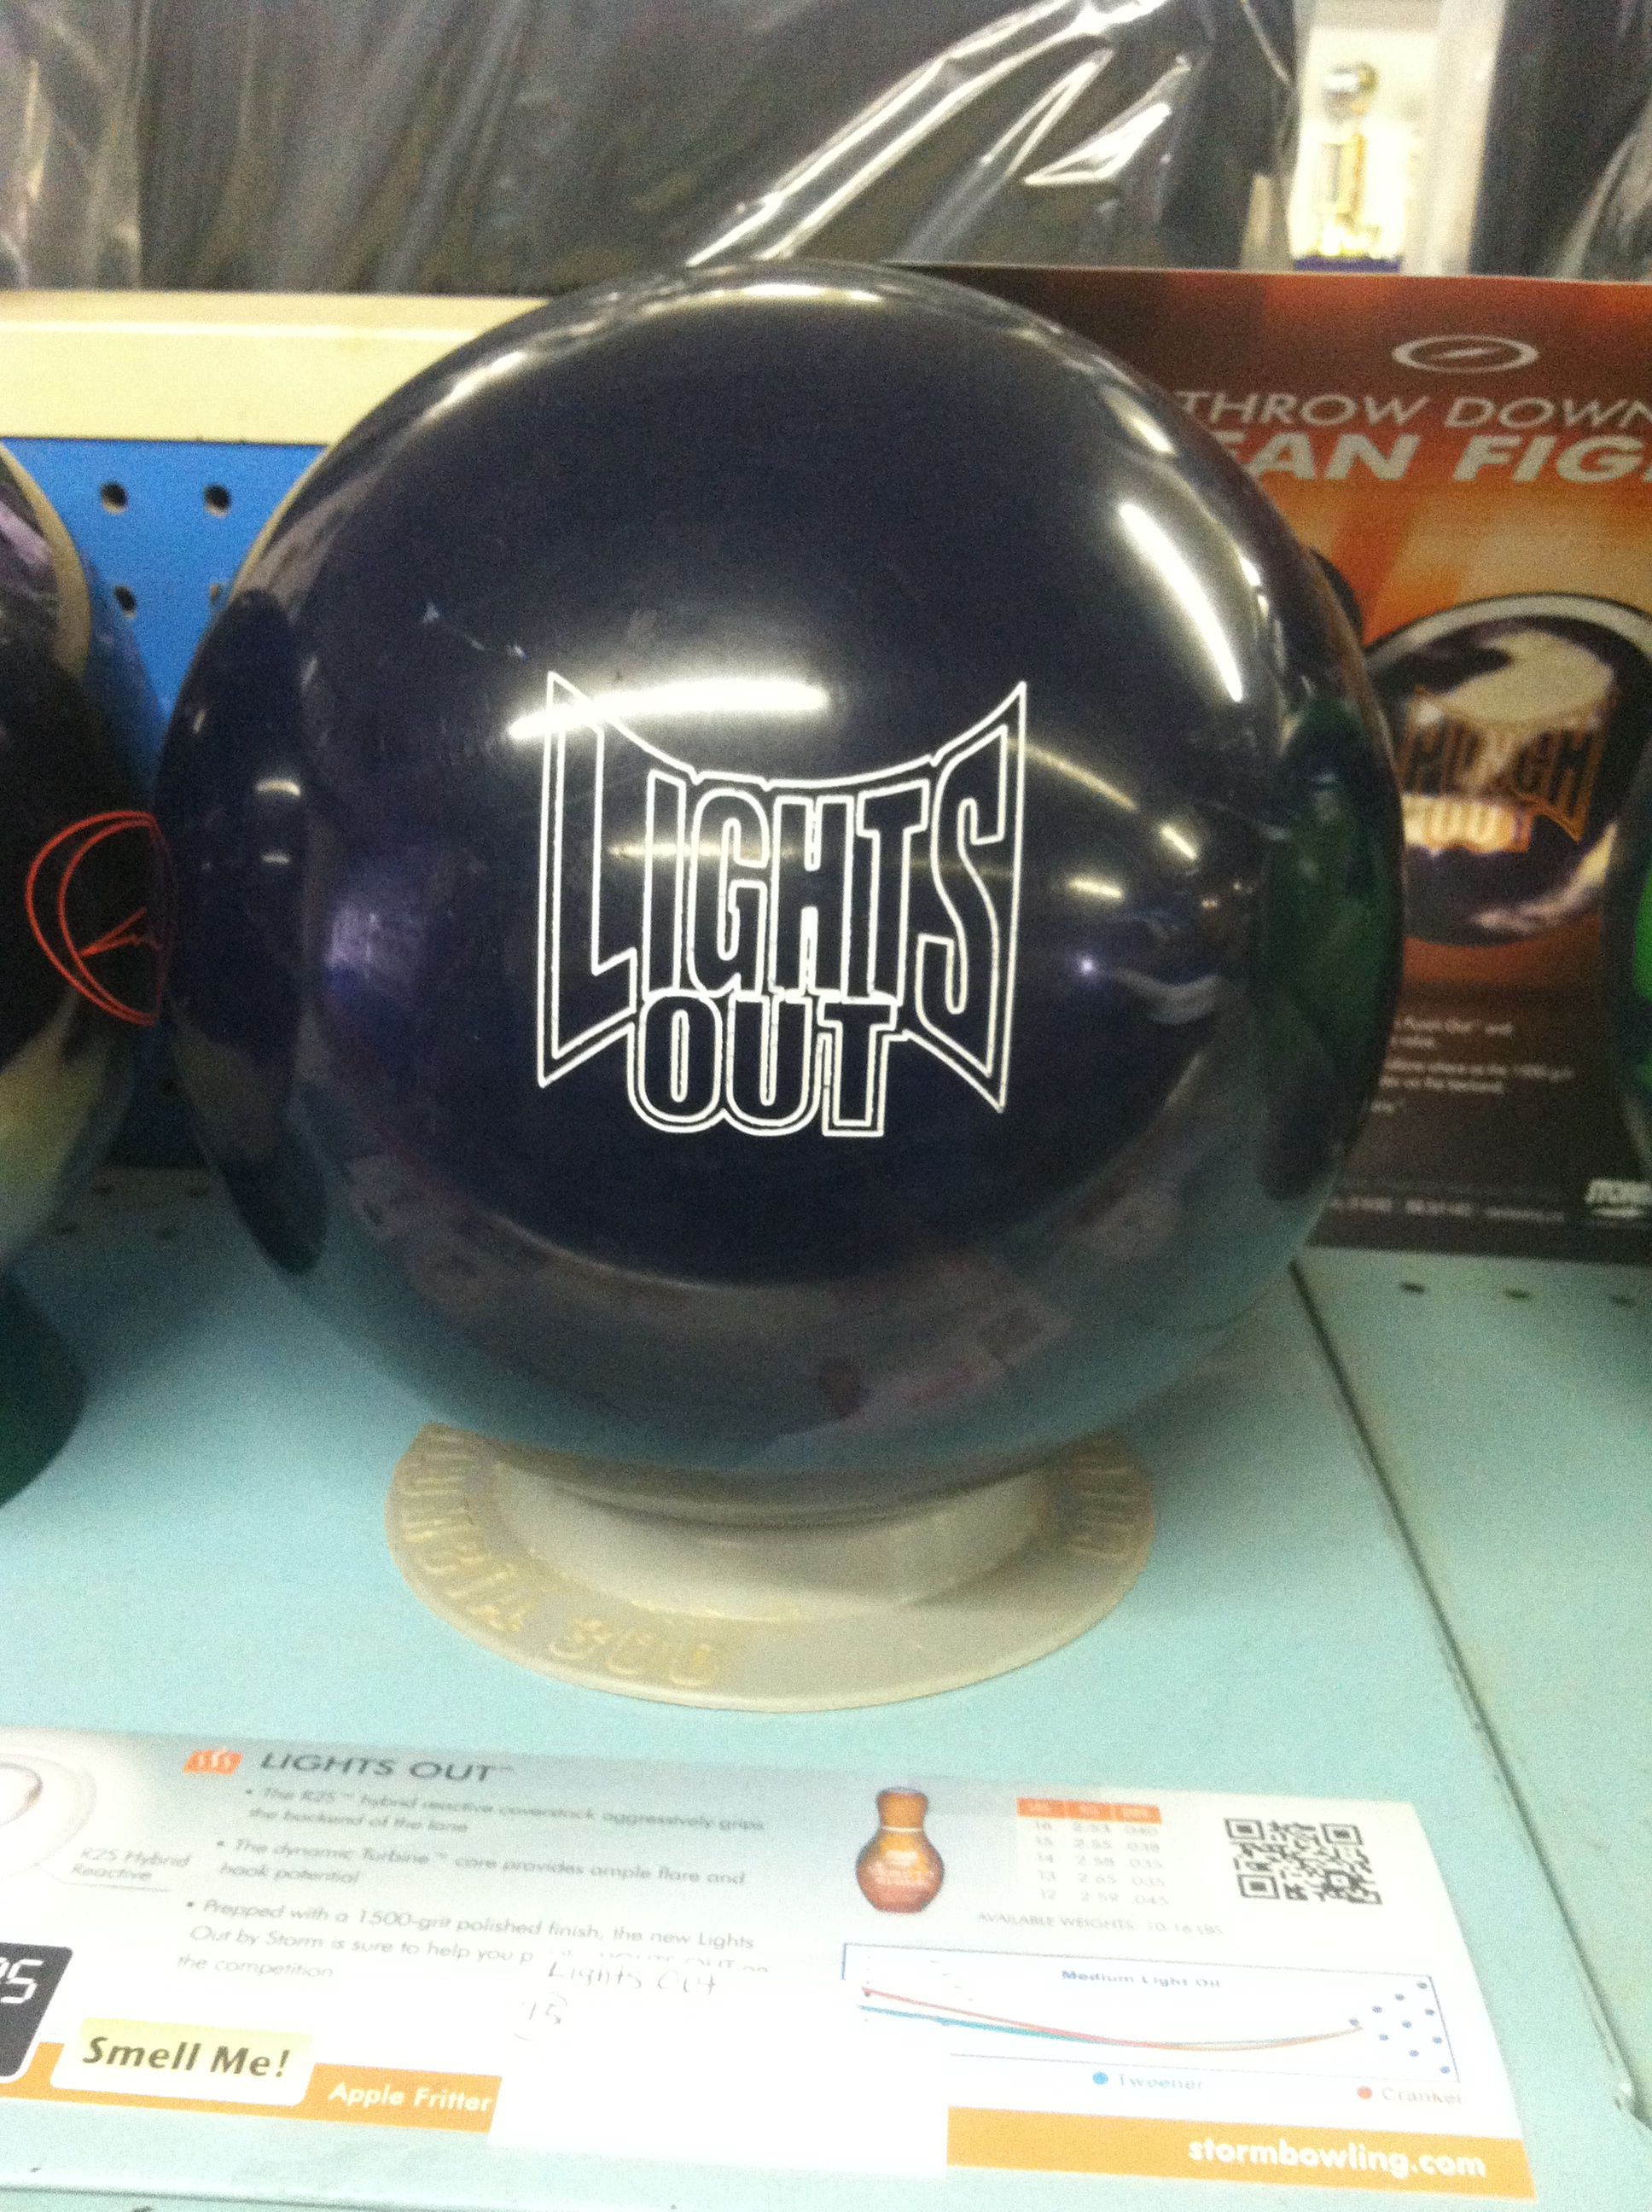 Marvelous Discover Ideas About East Hanover. Storm Lights Out $169.95 Photo